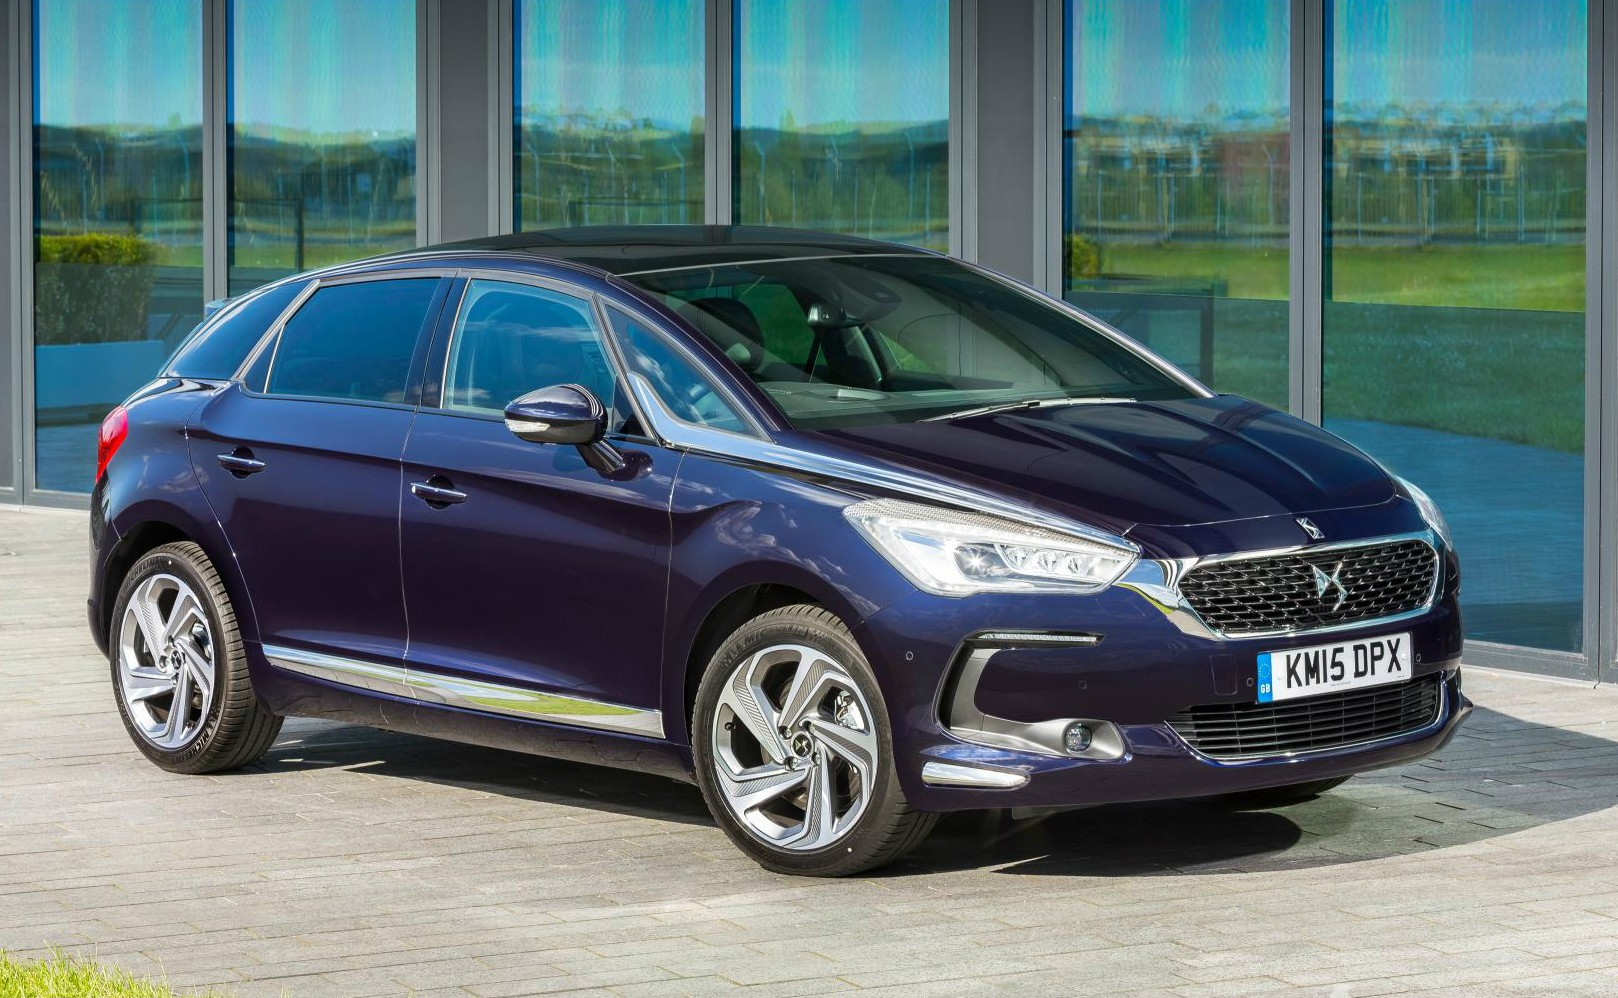 Ds5 Hybrid Discontinued In Uk Due To Poor Sales